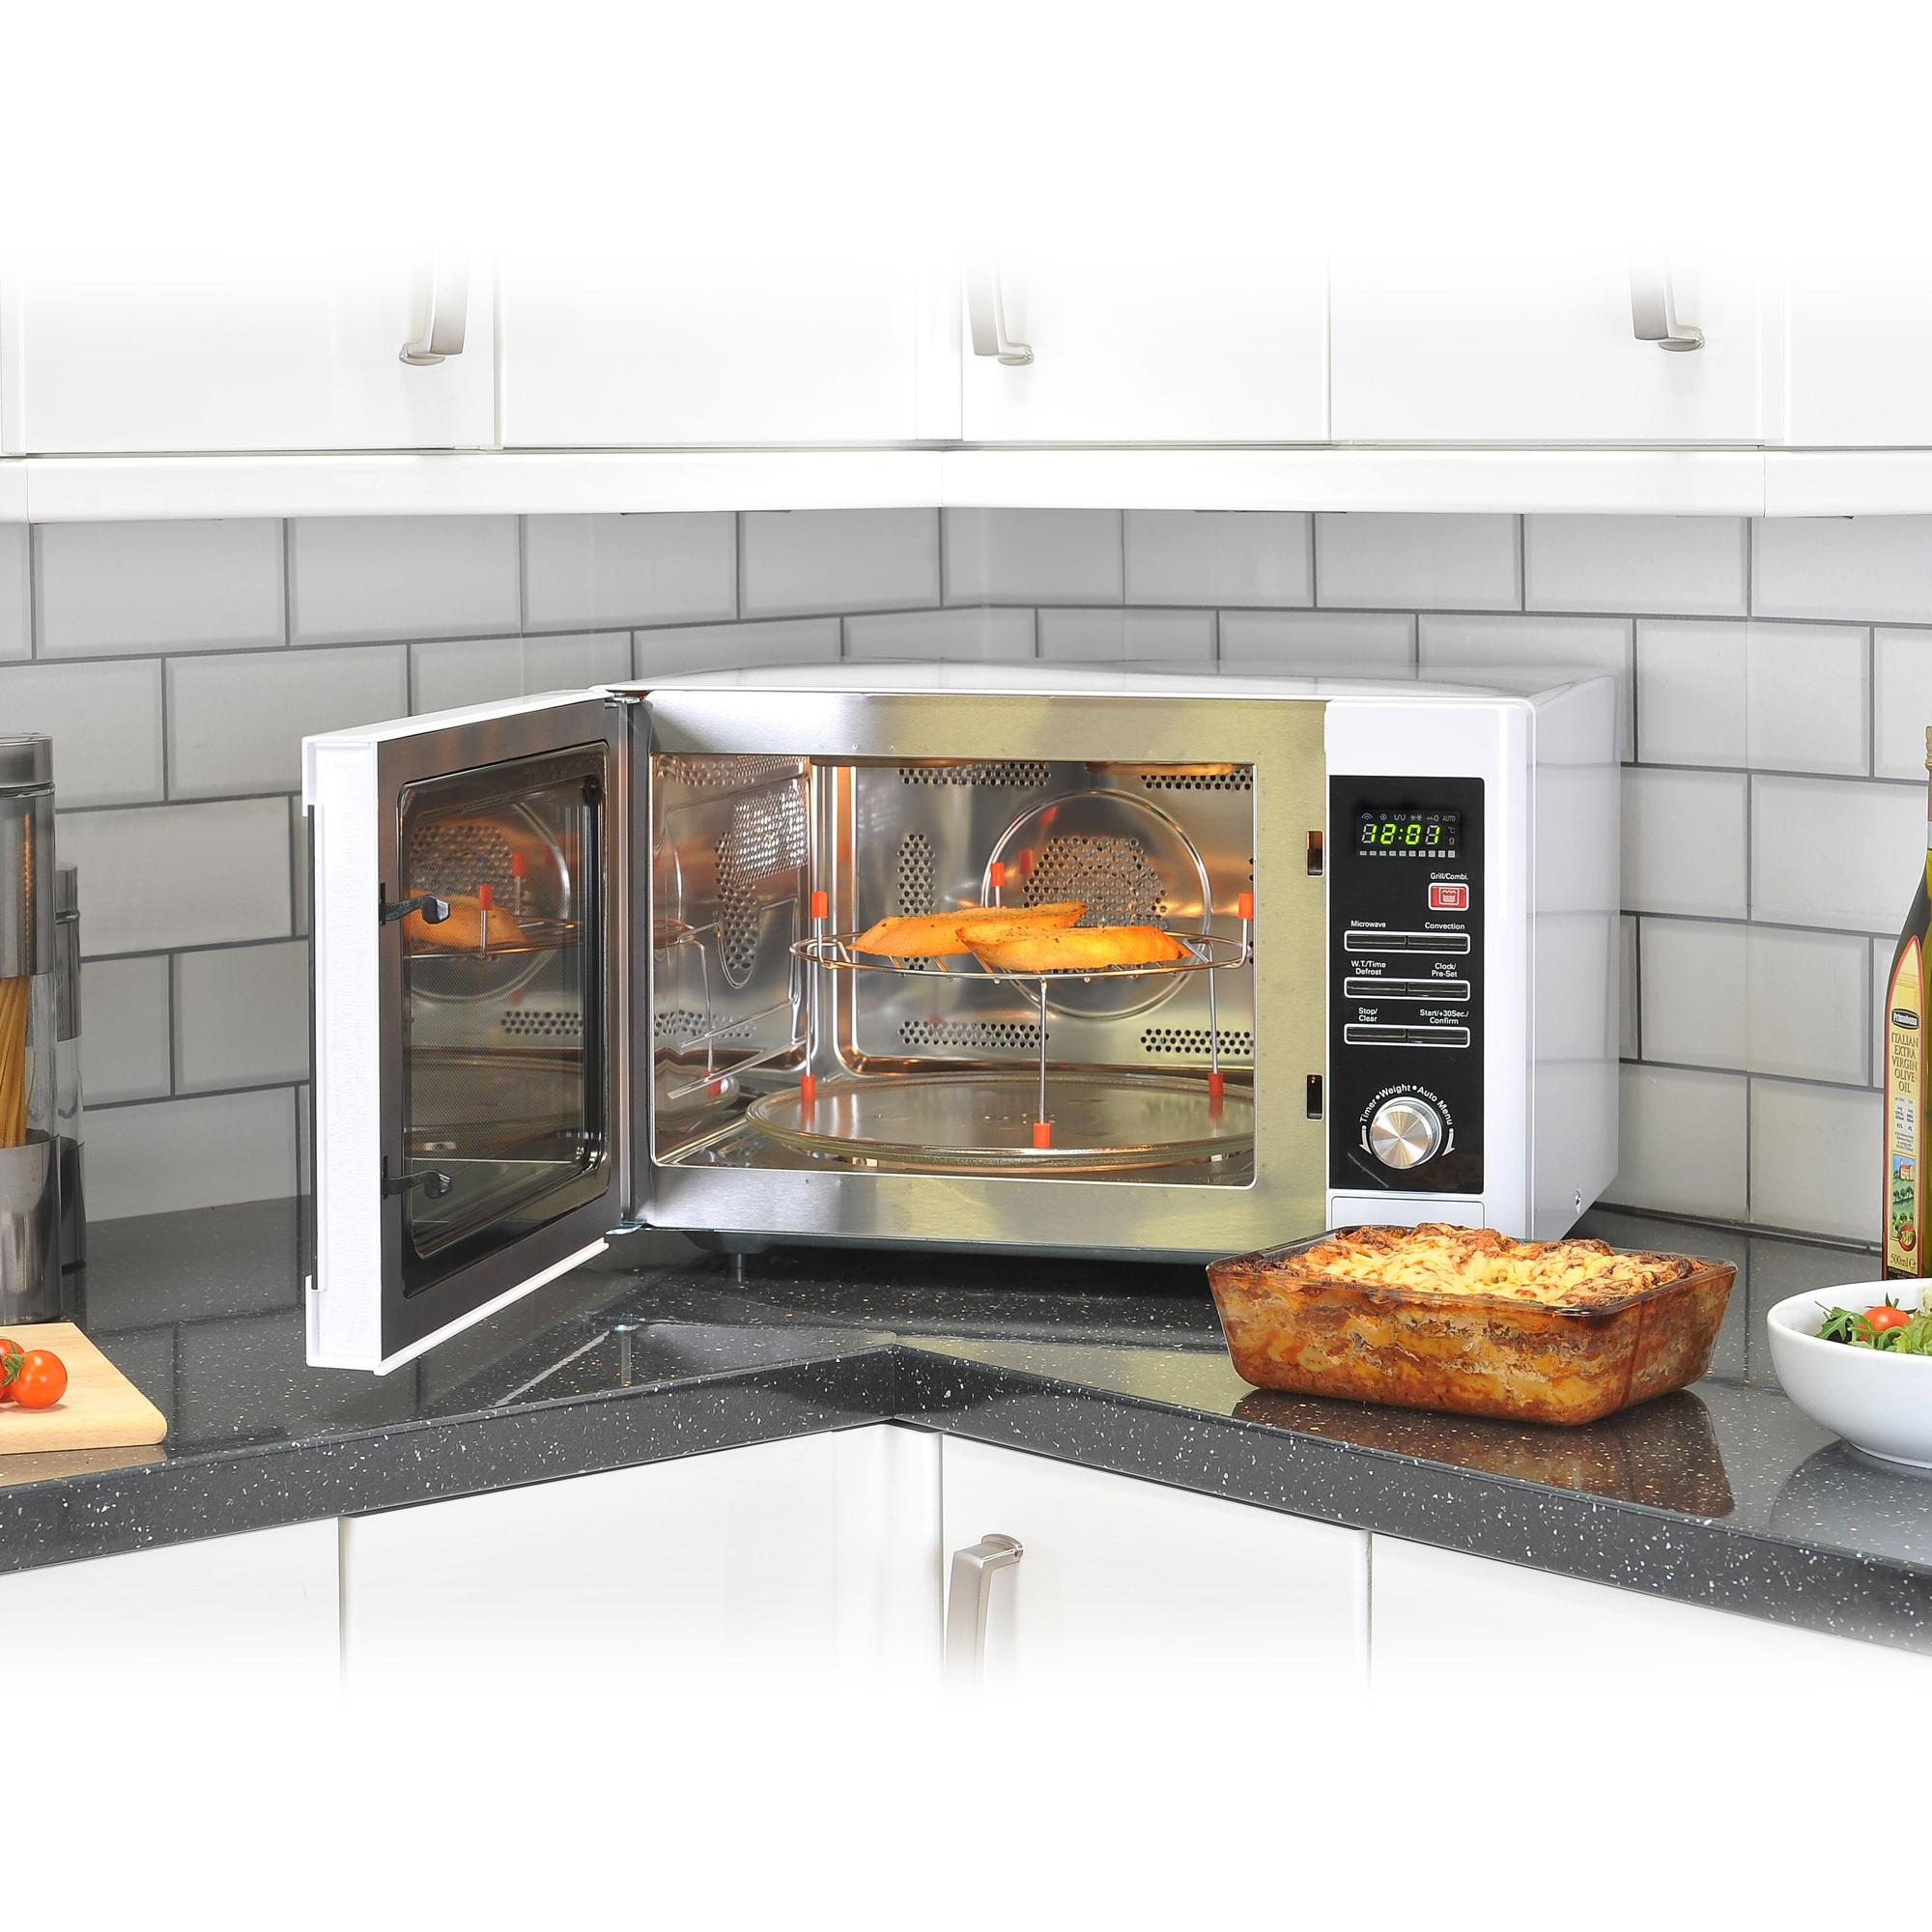 Igenix Ig3092 Digital Combination Microwave With Grill And